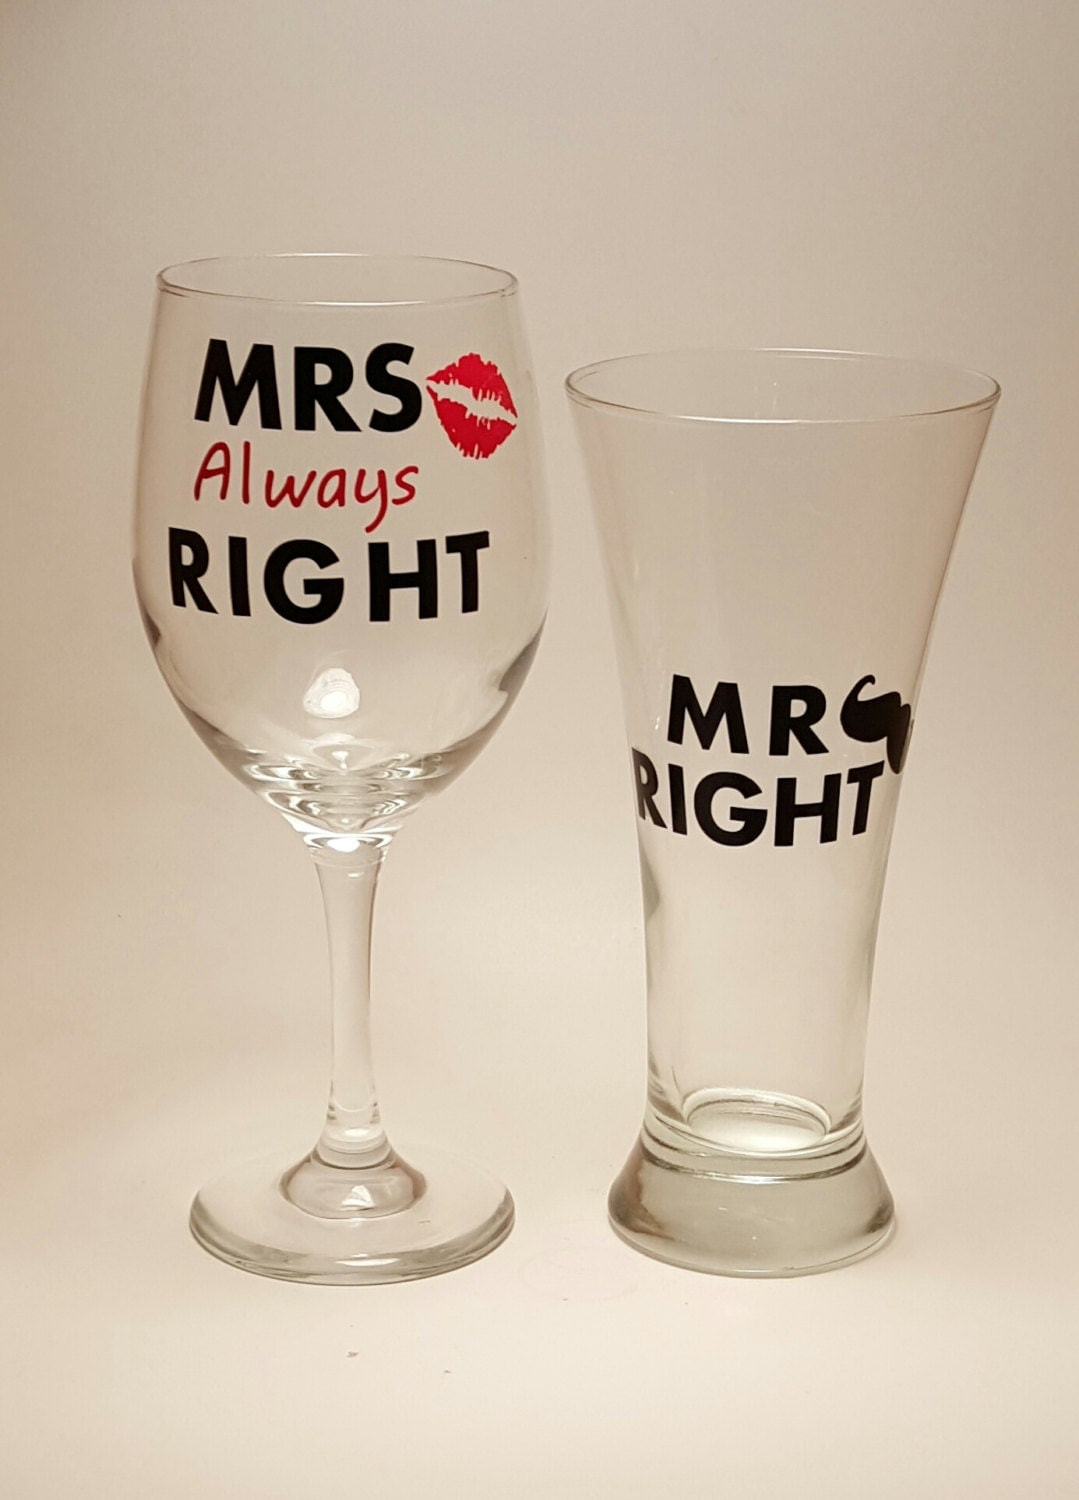 Mrs Always Right Collection Review: Mr Right Mrs Always Right Wine Glass Set Funny Wedding